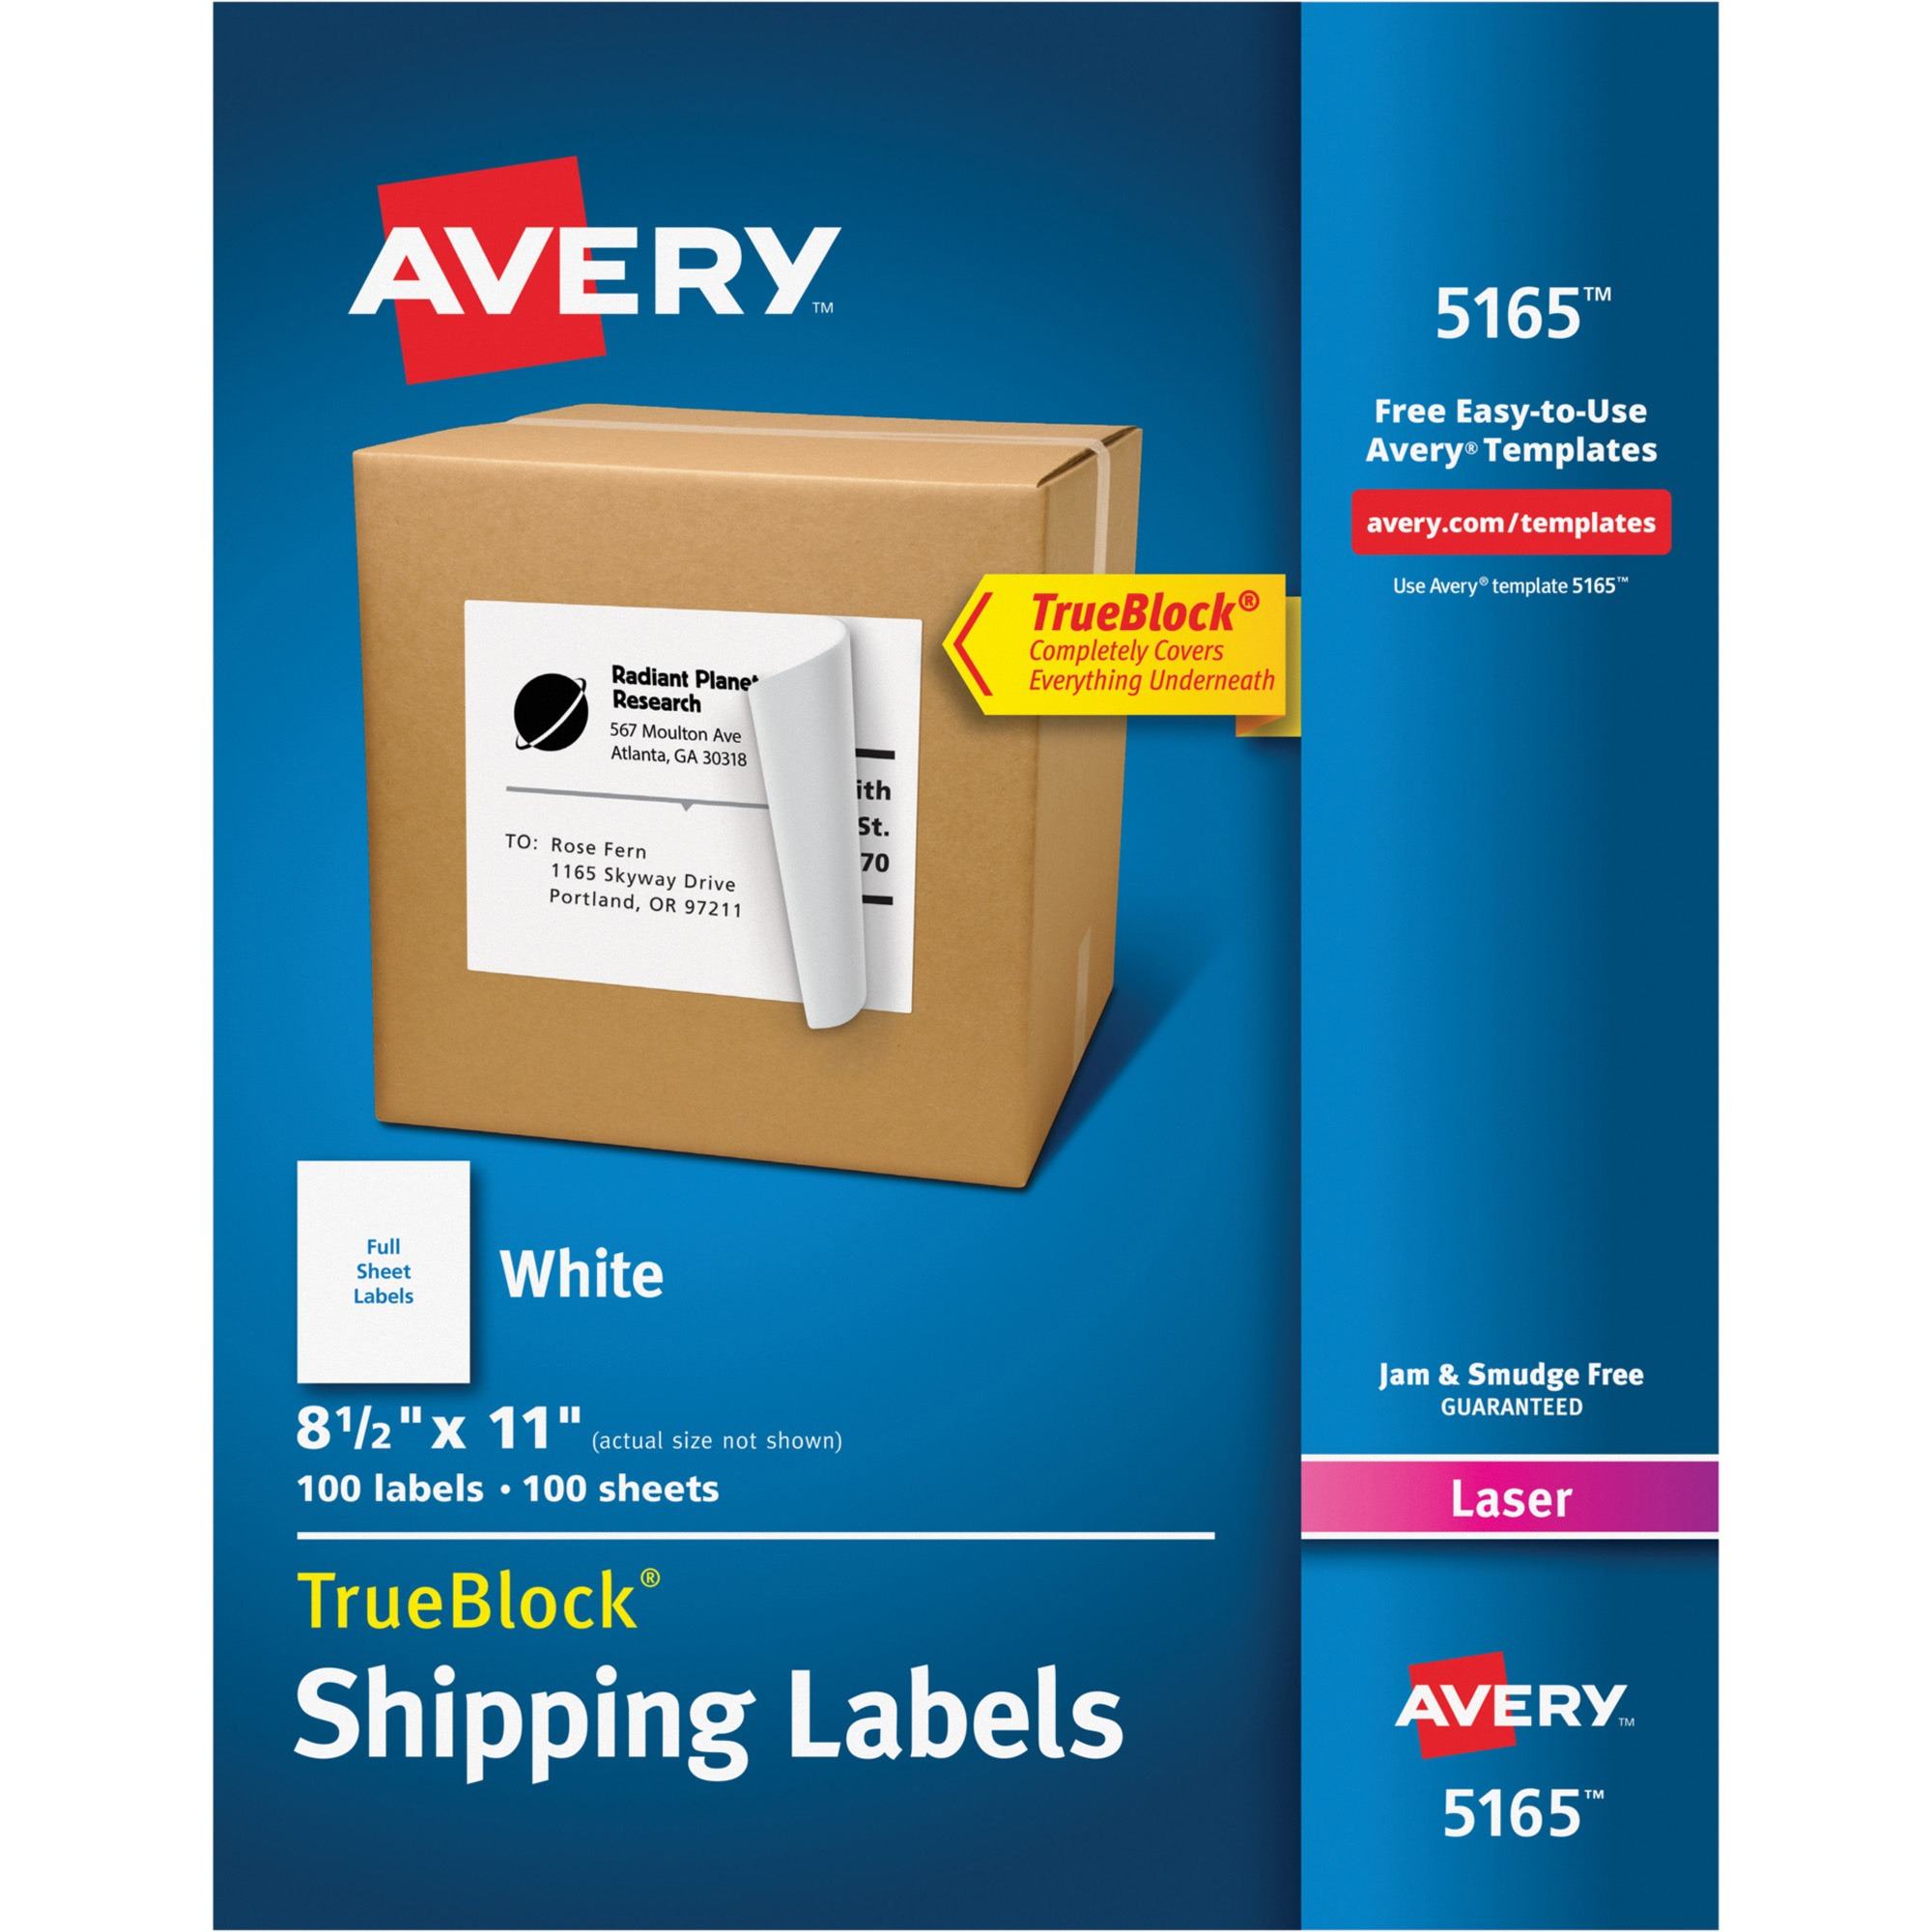 Avery Shipping Labels with TrueBlock Technology for Laser Printers, 8.5 x 11 in., White, 100 Count (5165)